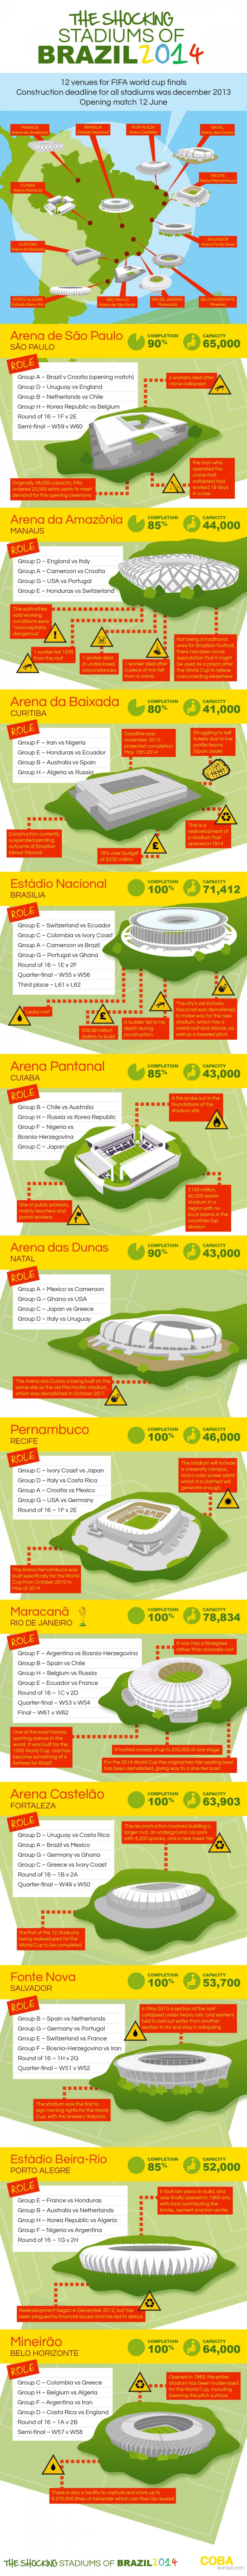 The shocking stadiums of brazil 2014